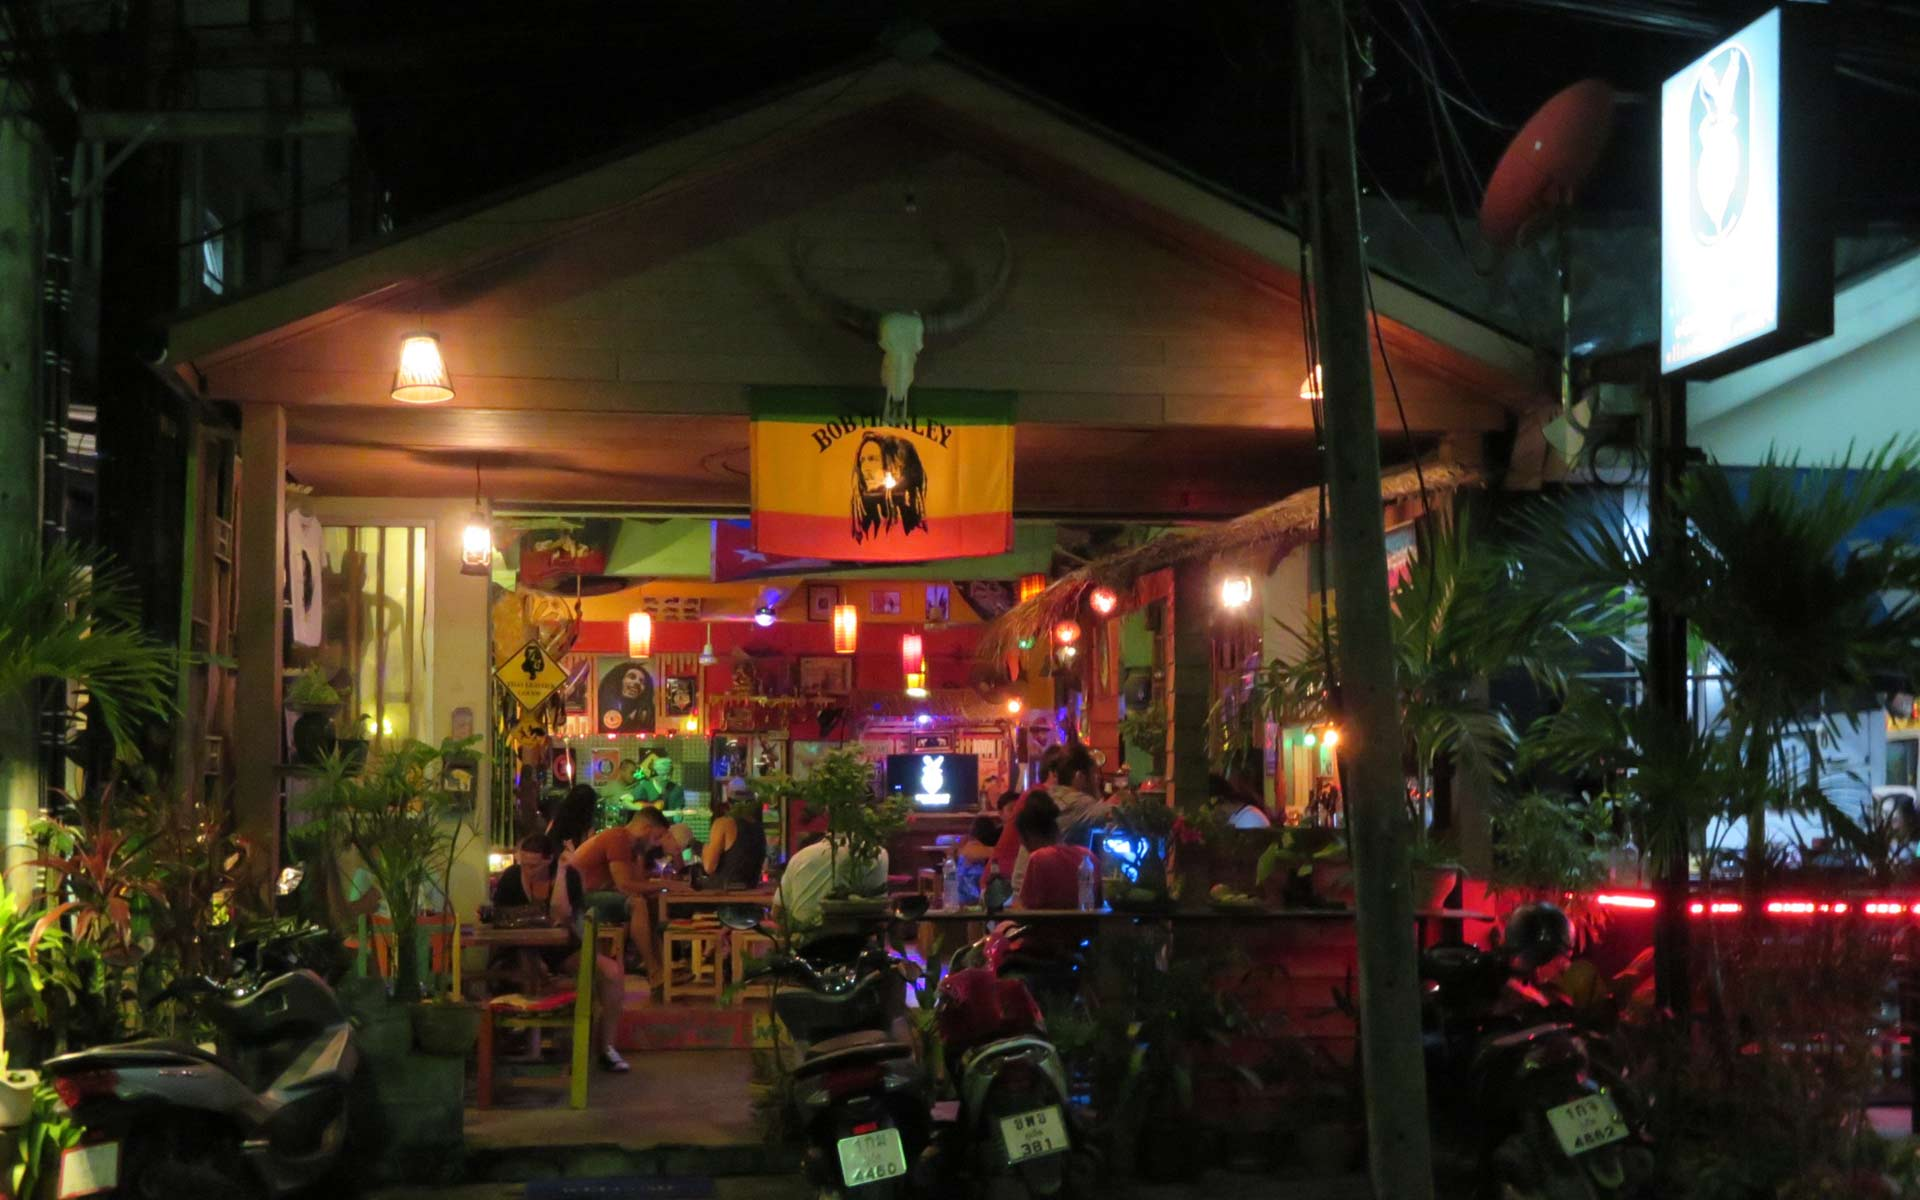 Roots Rock Reggae Bar and Shop on Nanai Road, Patong Beach